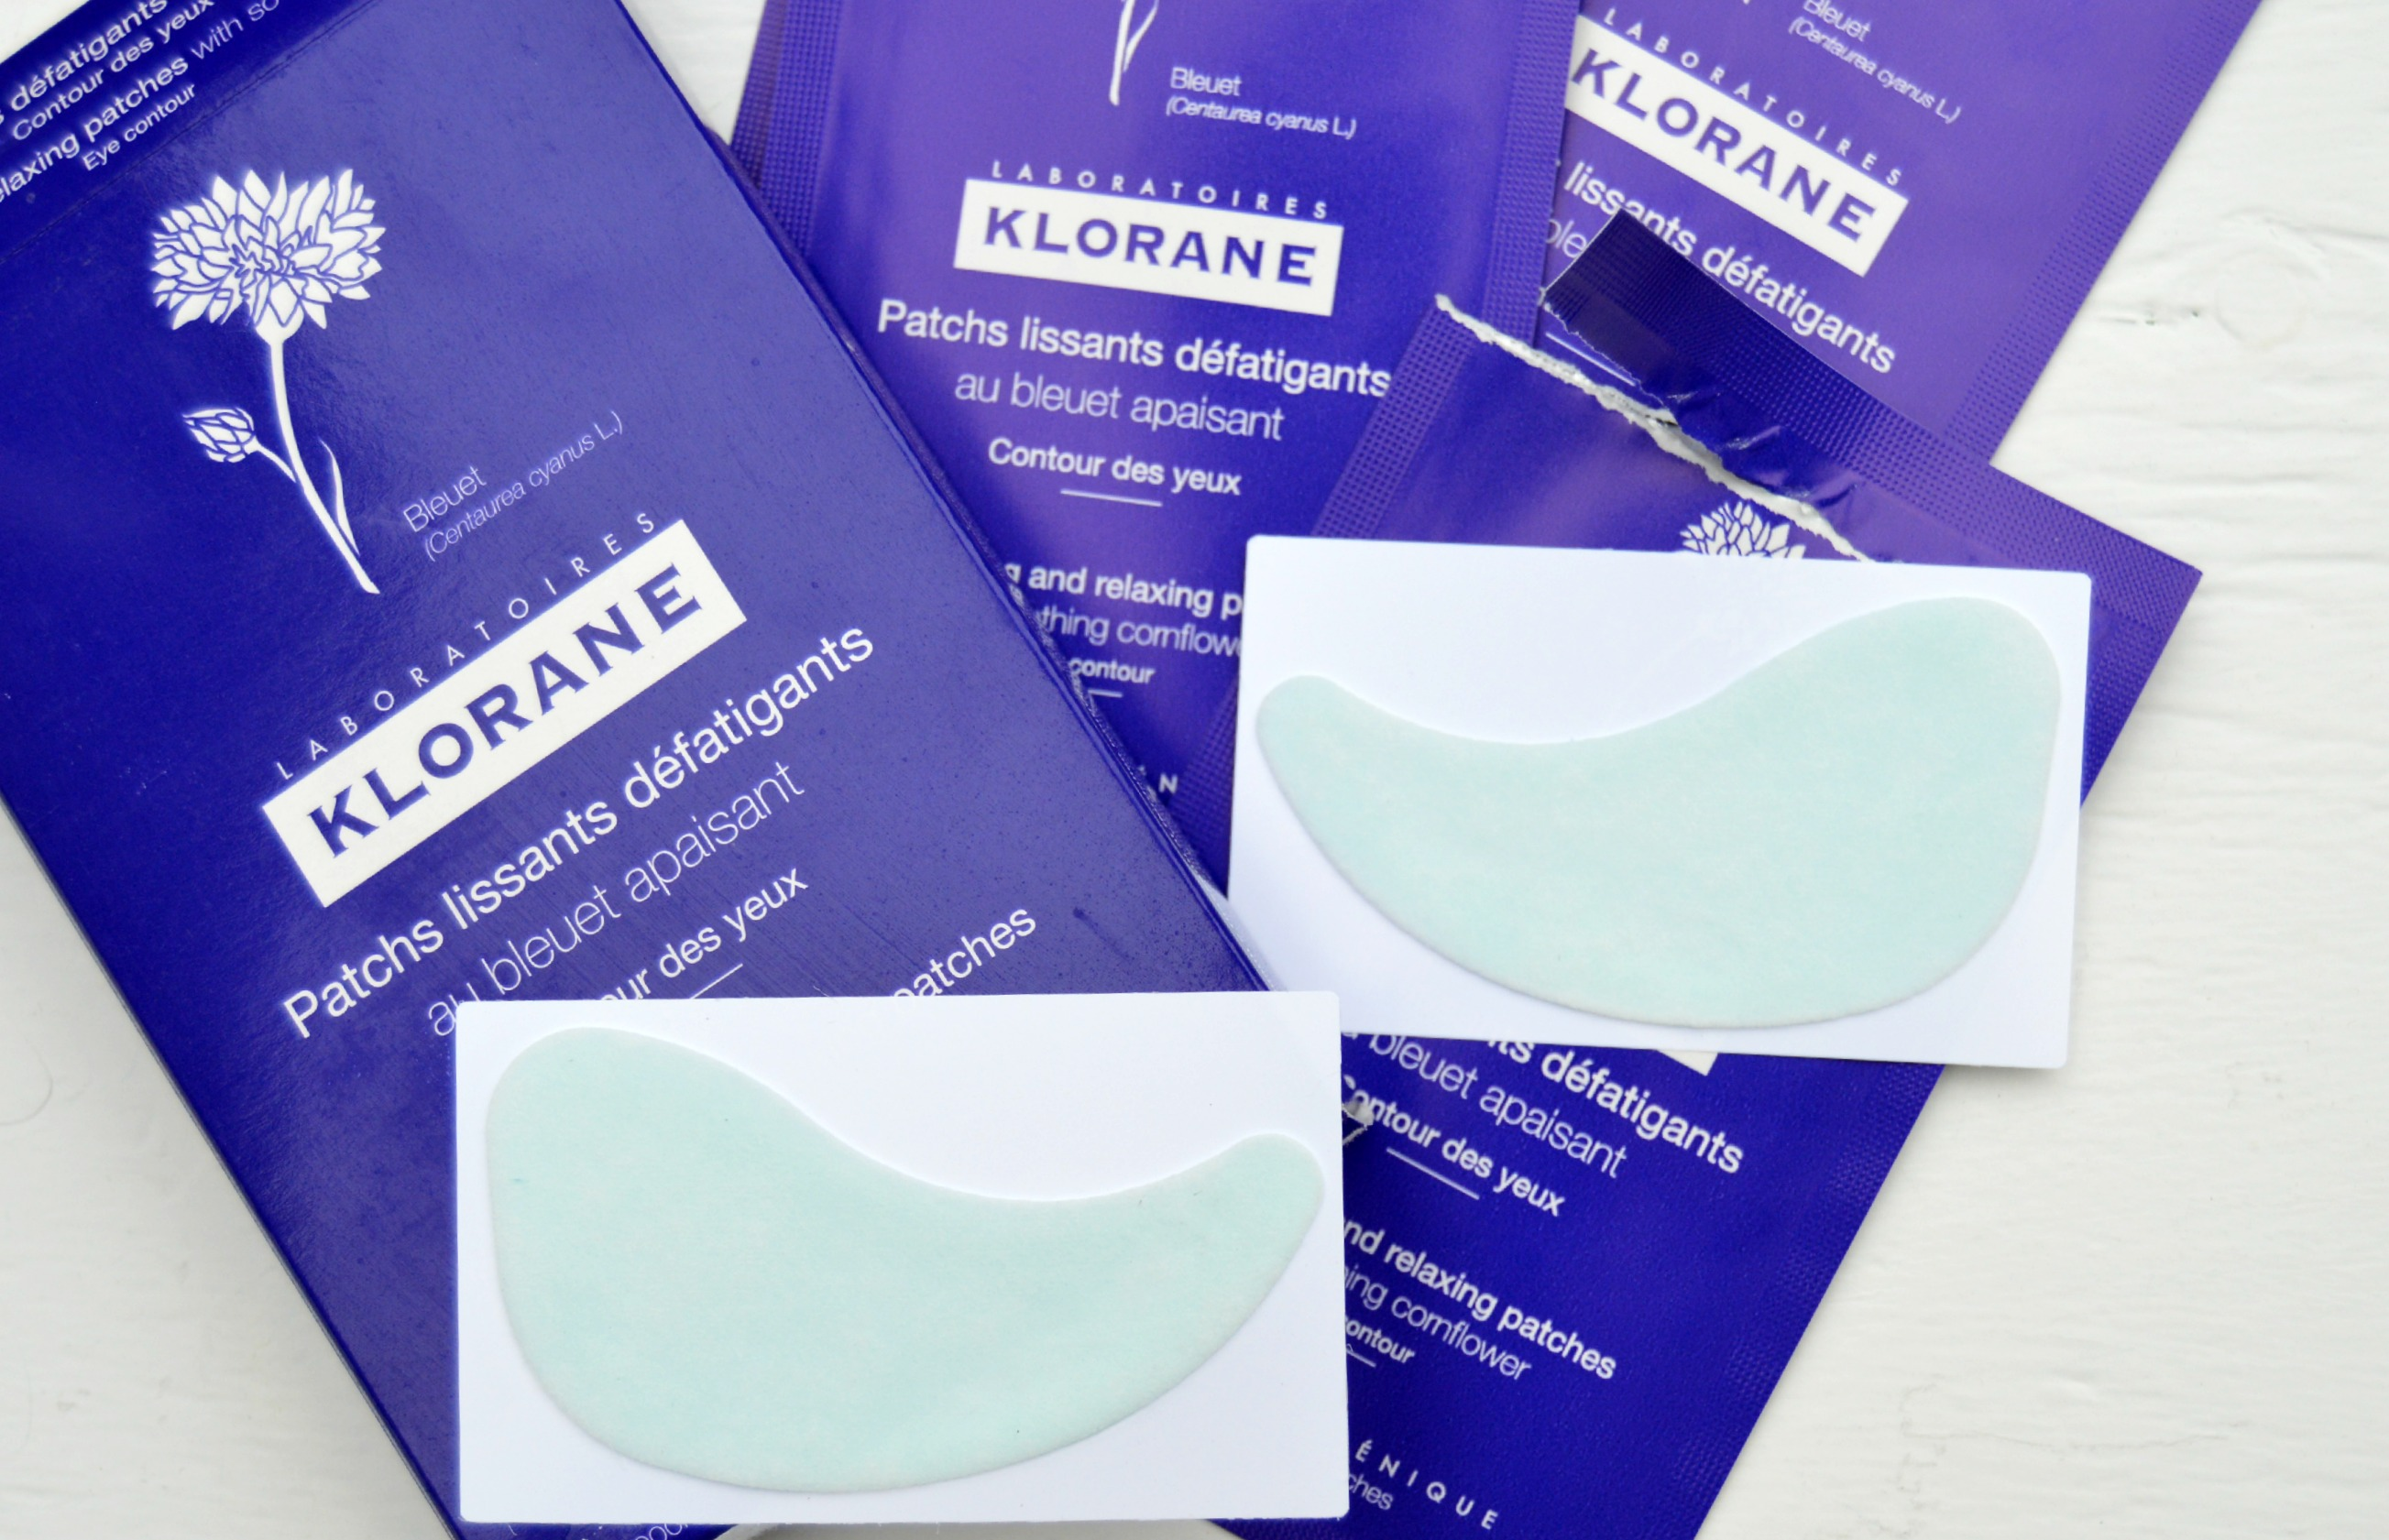 klorane-smoothing-and-relaxing-eye-patches-cornflower-review-inhautepursuit